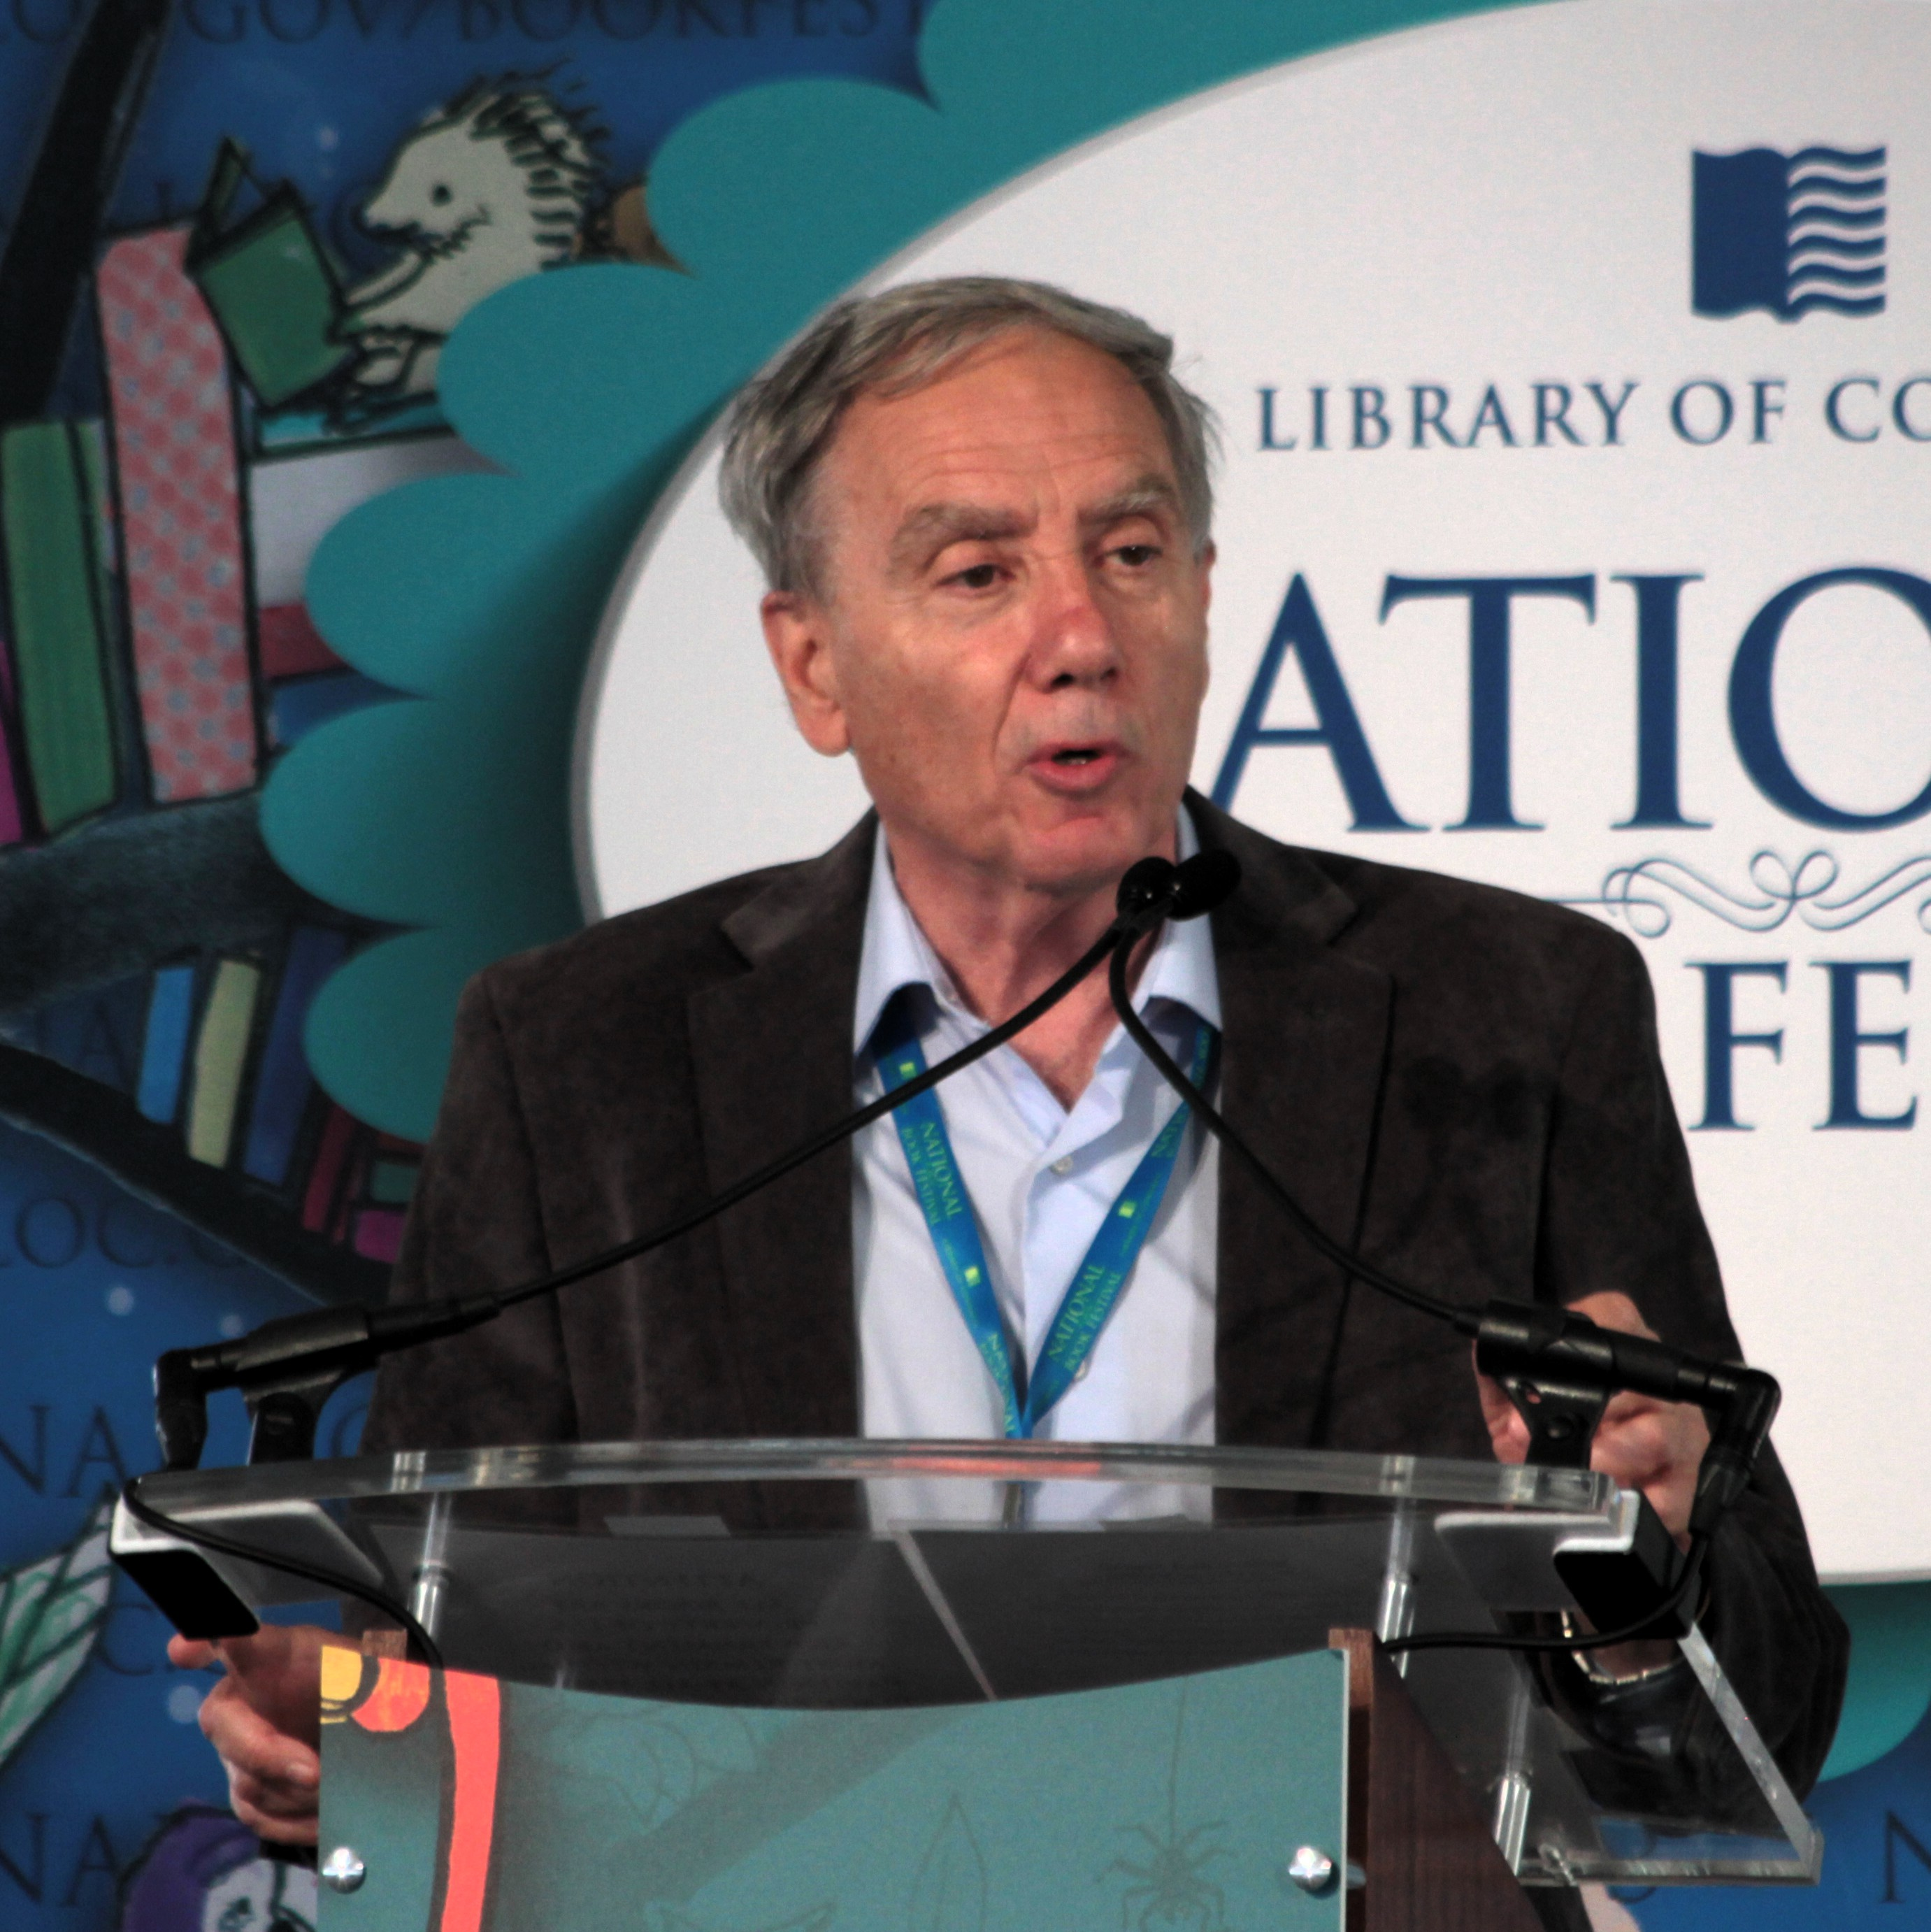 Speaking on 22 September 2013 on the [[National Mall]] in Washington, DC during the 2013 [[National Book Festival]]